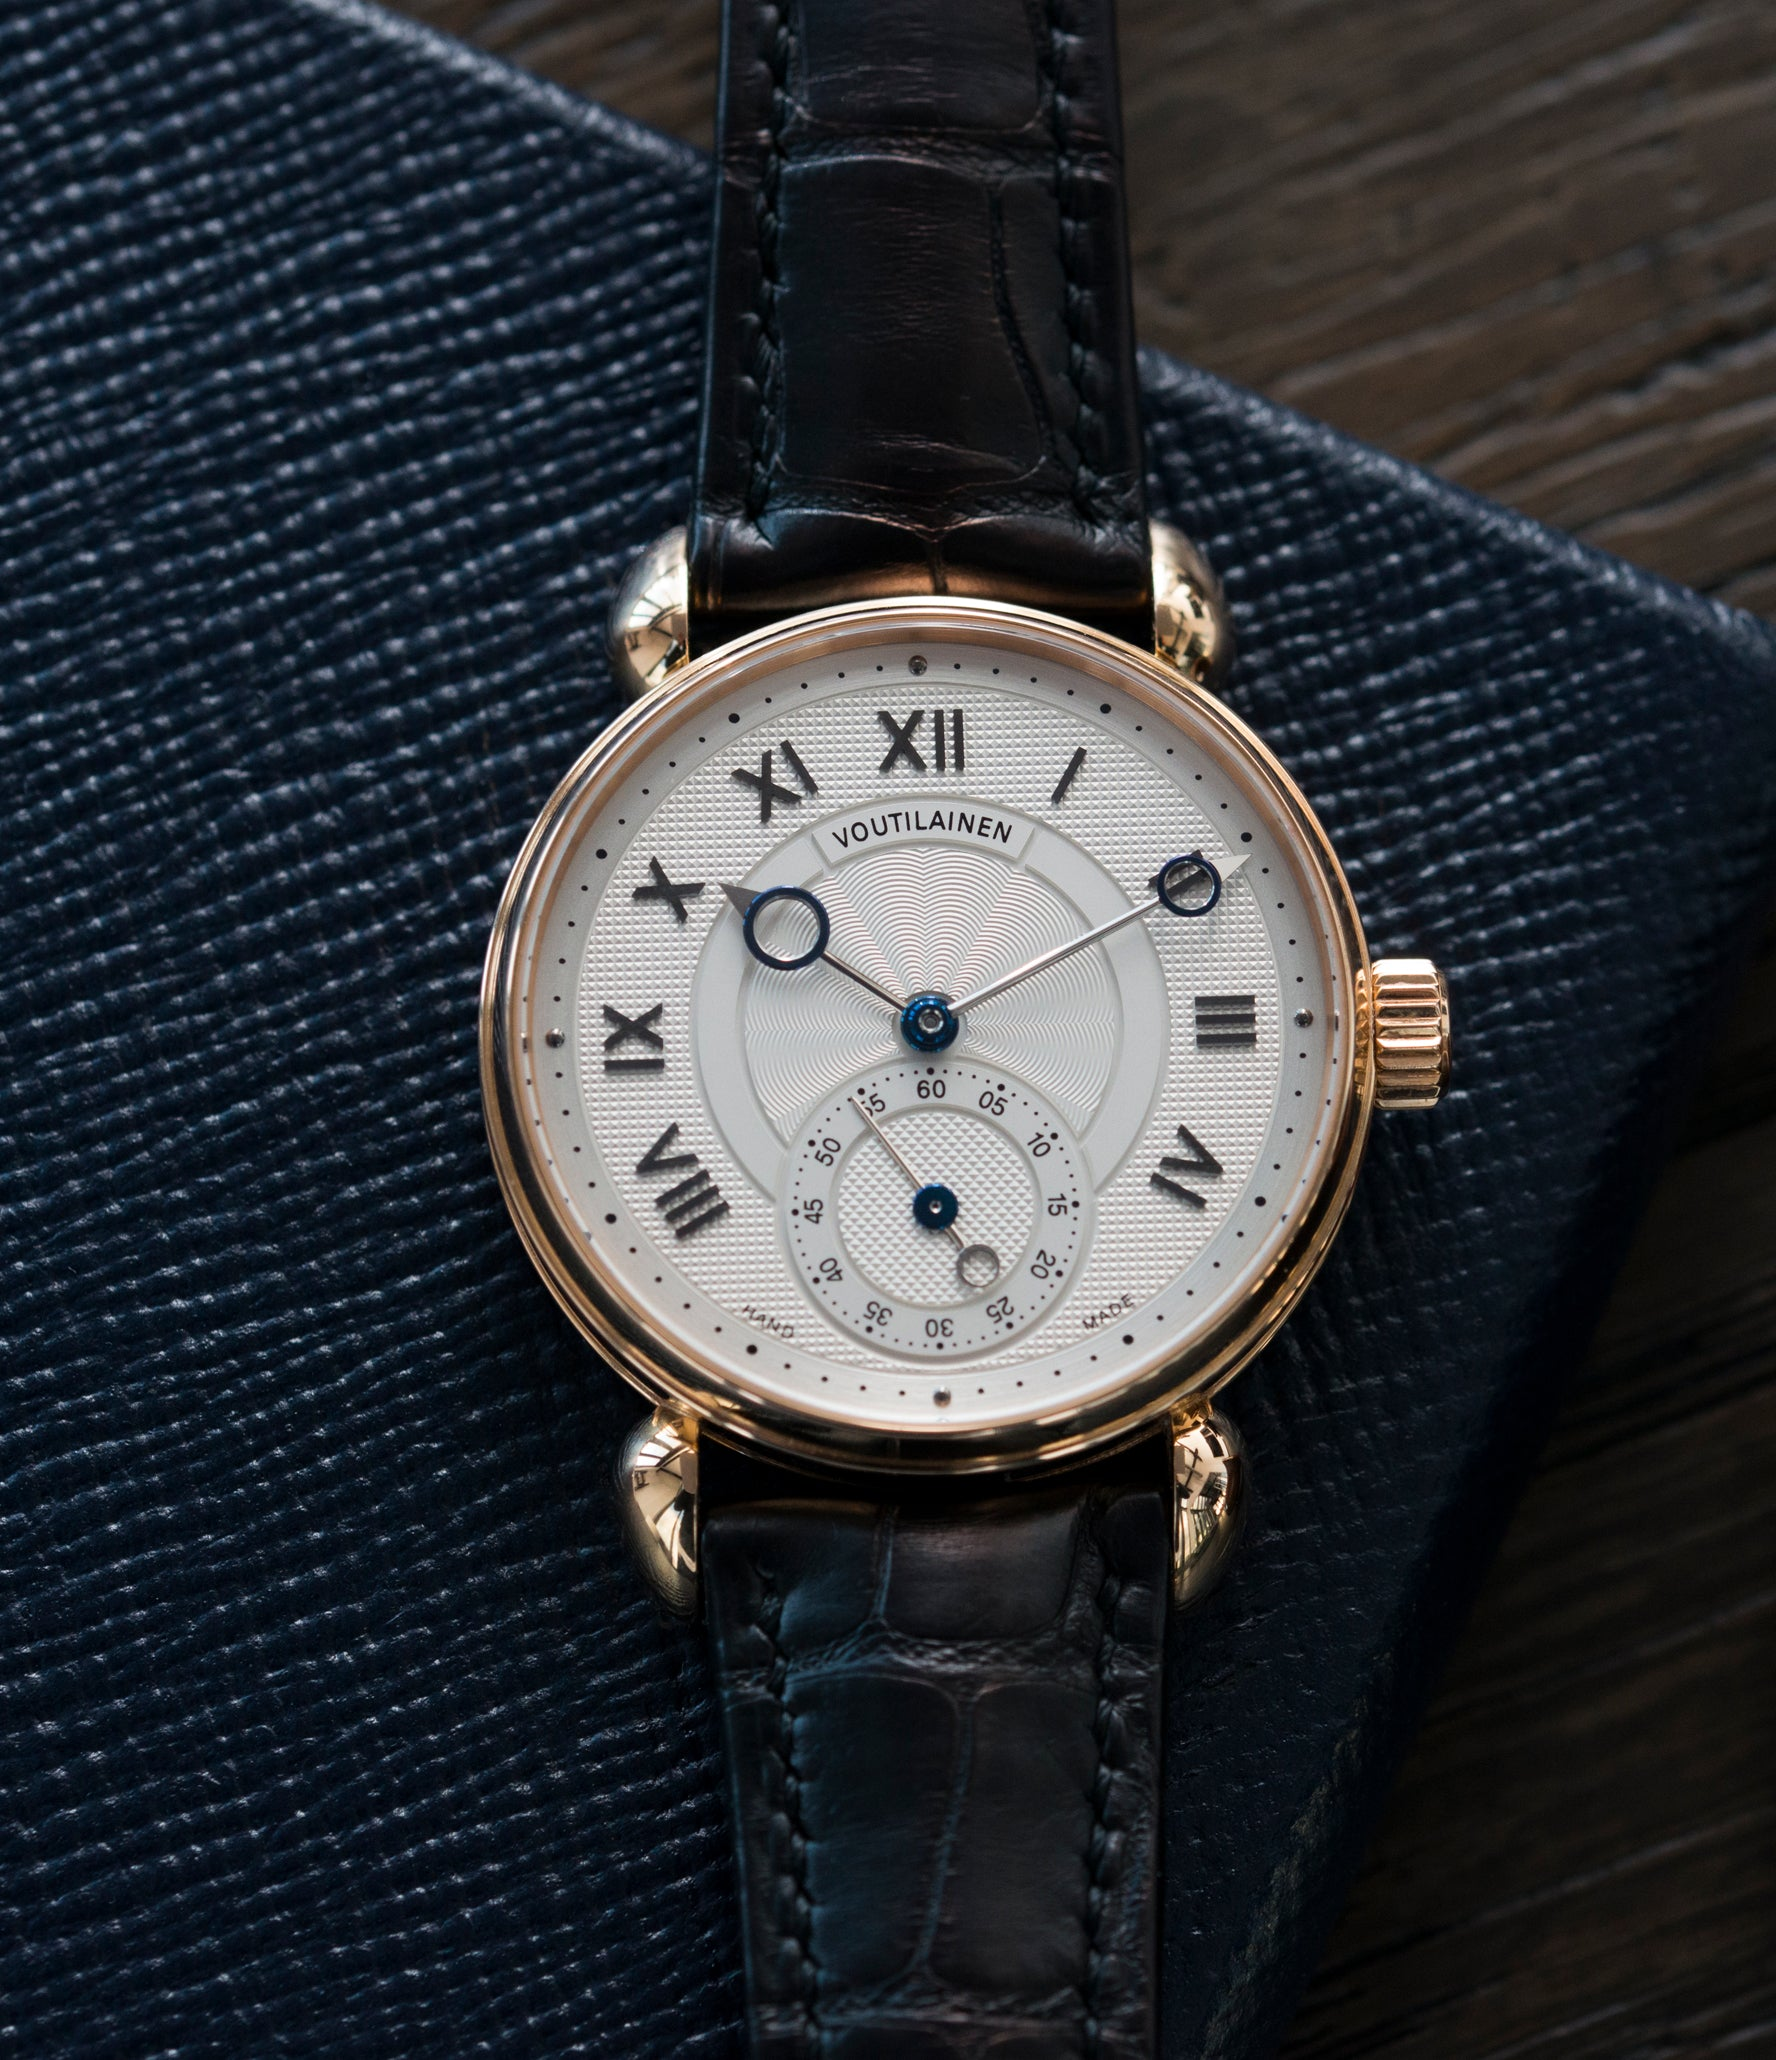 selling Kari Voutilainen Observatoire Limited Edition rose gold rare dress watch for sale online at A Collected Man London endorsed seller of independent watchmaker